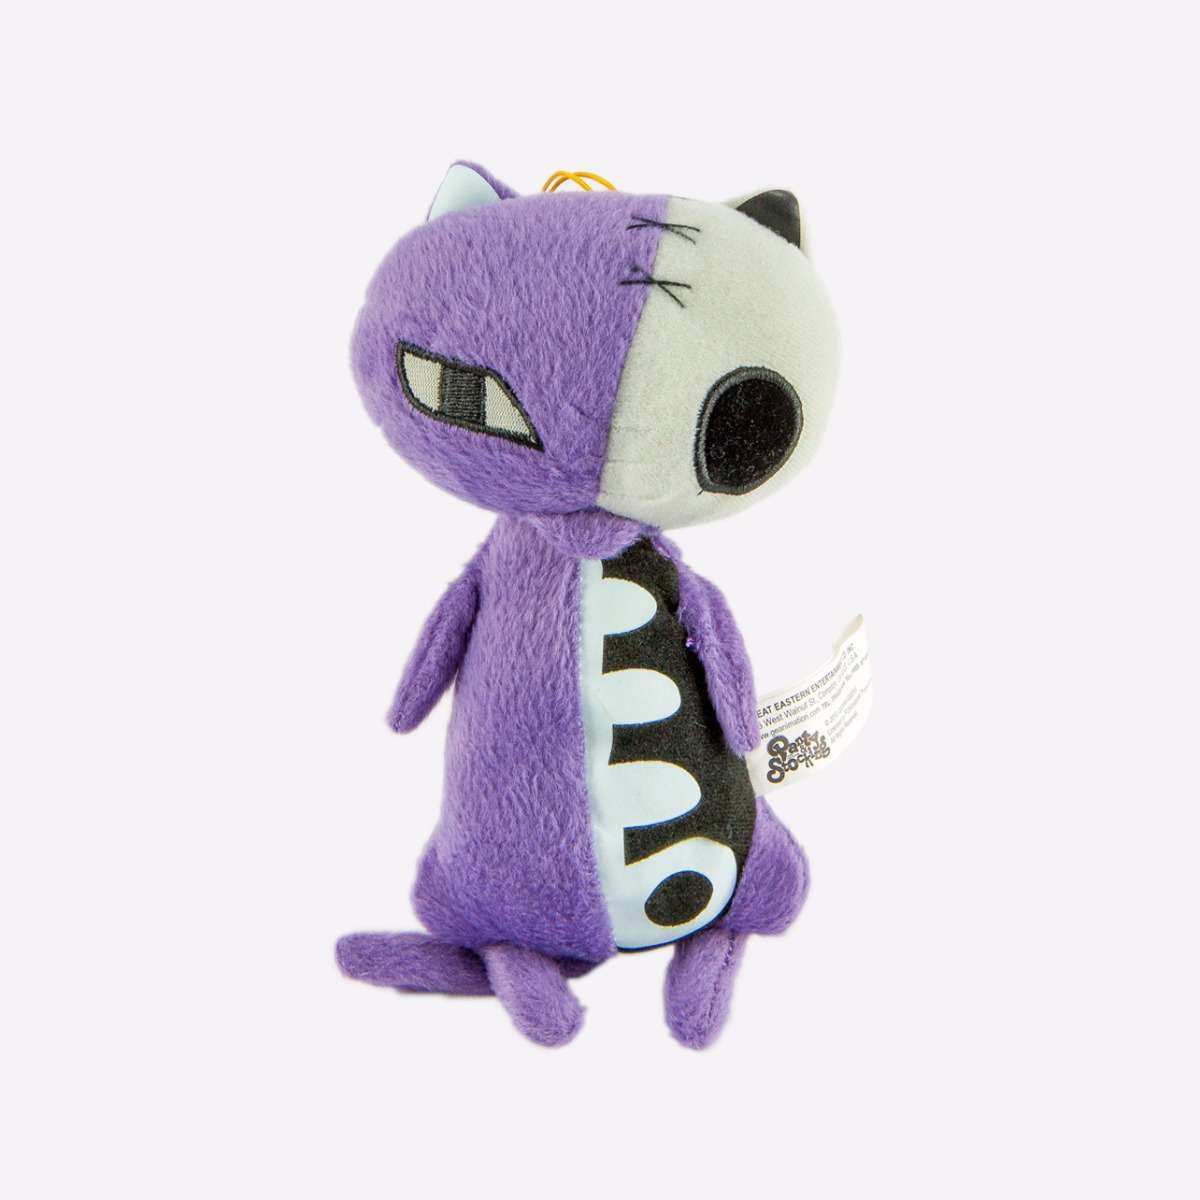 Hollow Kitty Plush Toys & Games